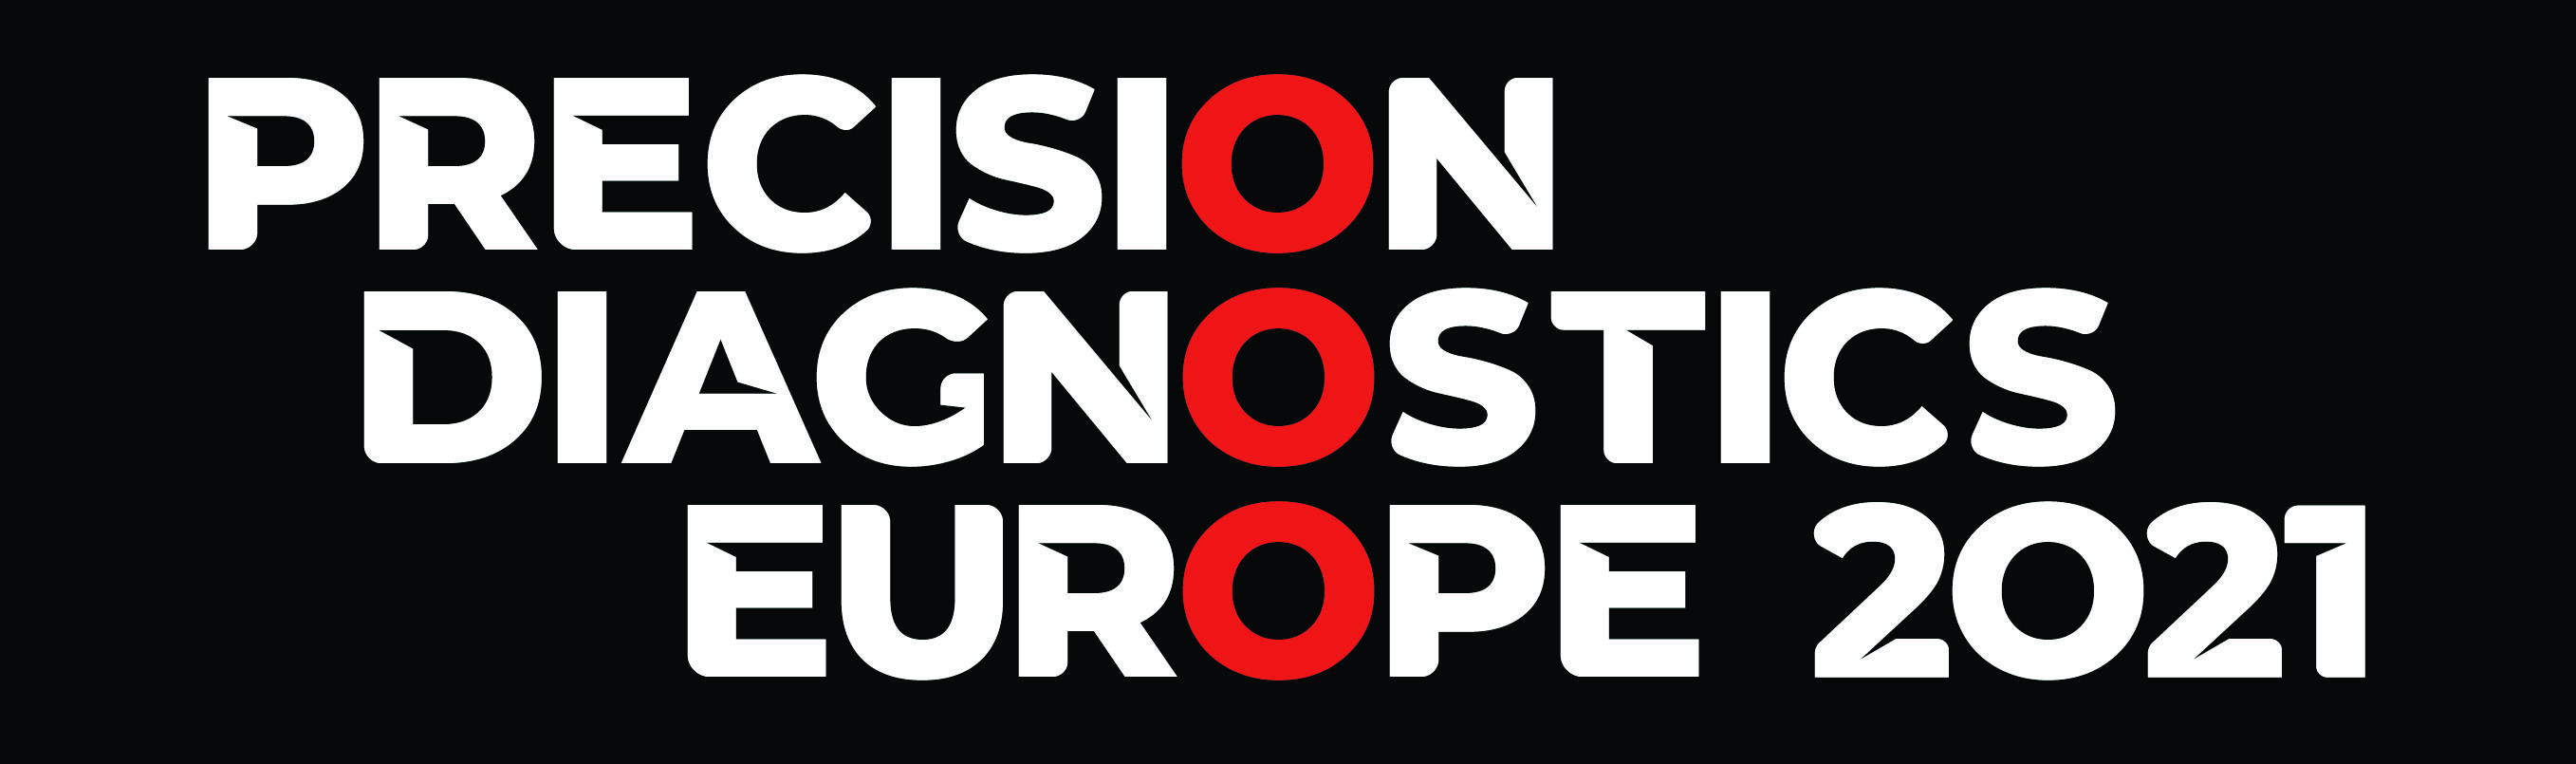 Precision Diagnostics Europe 2021